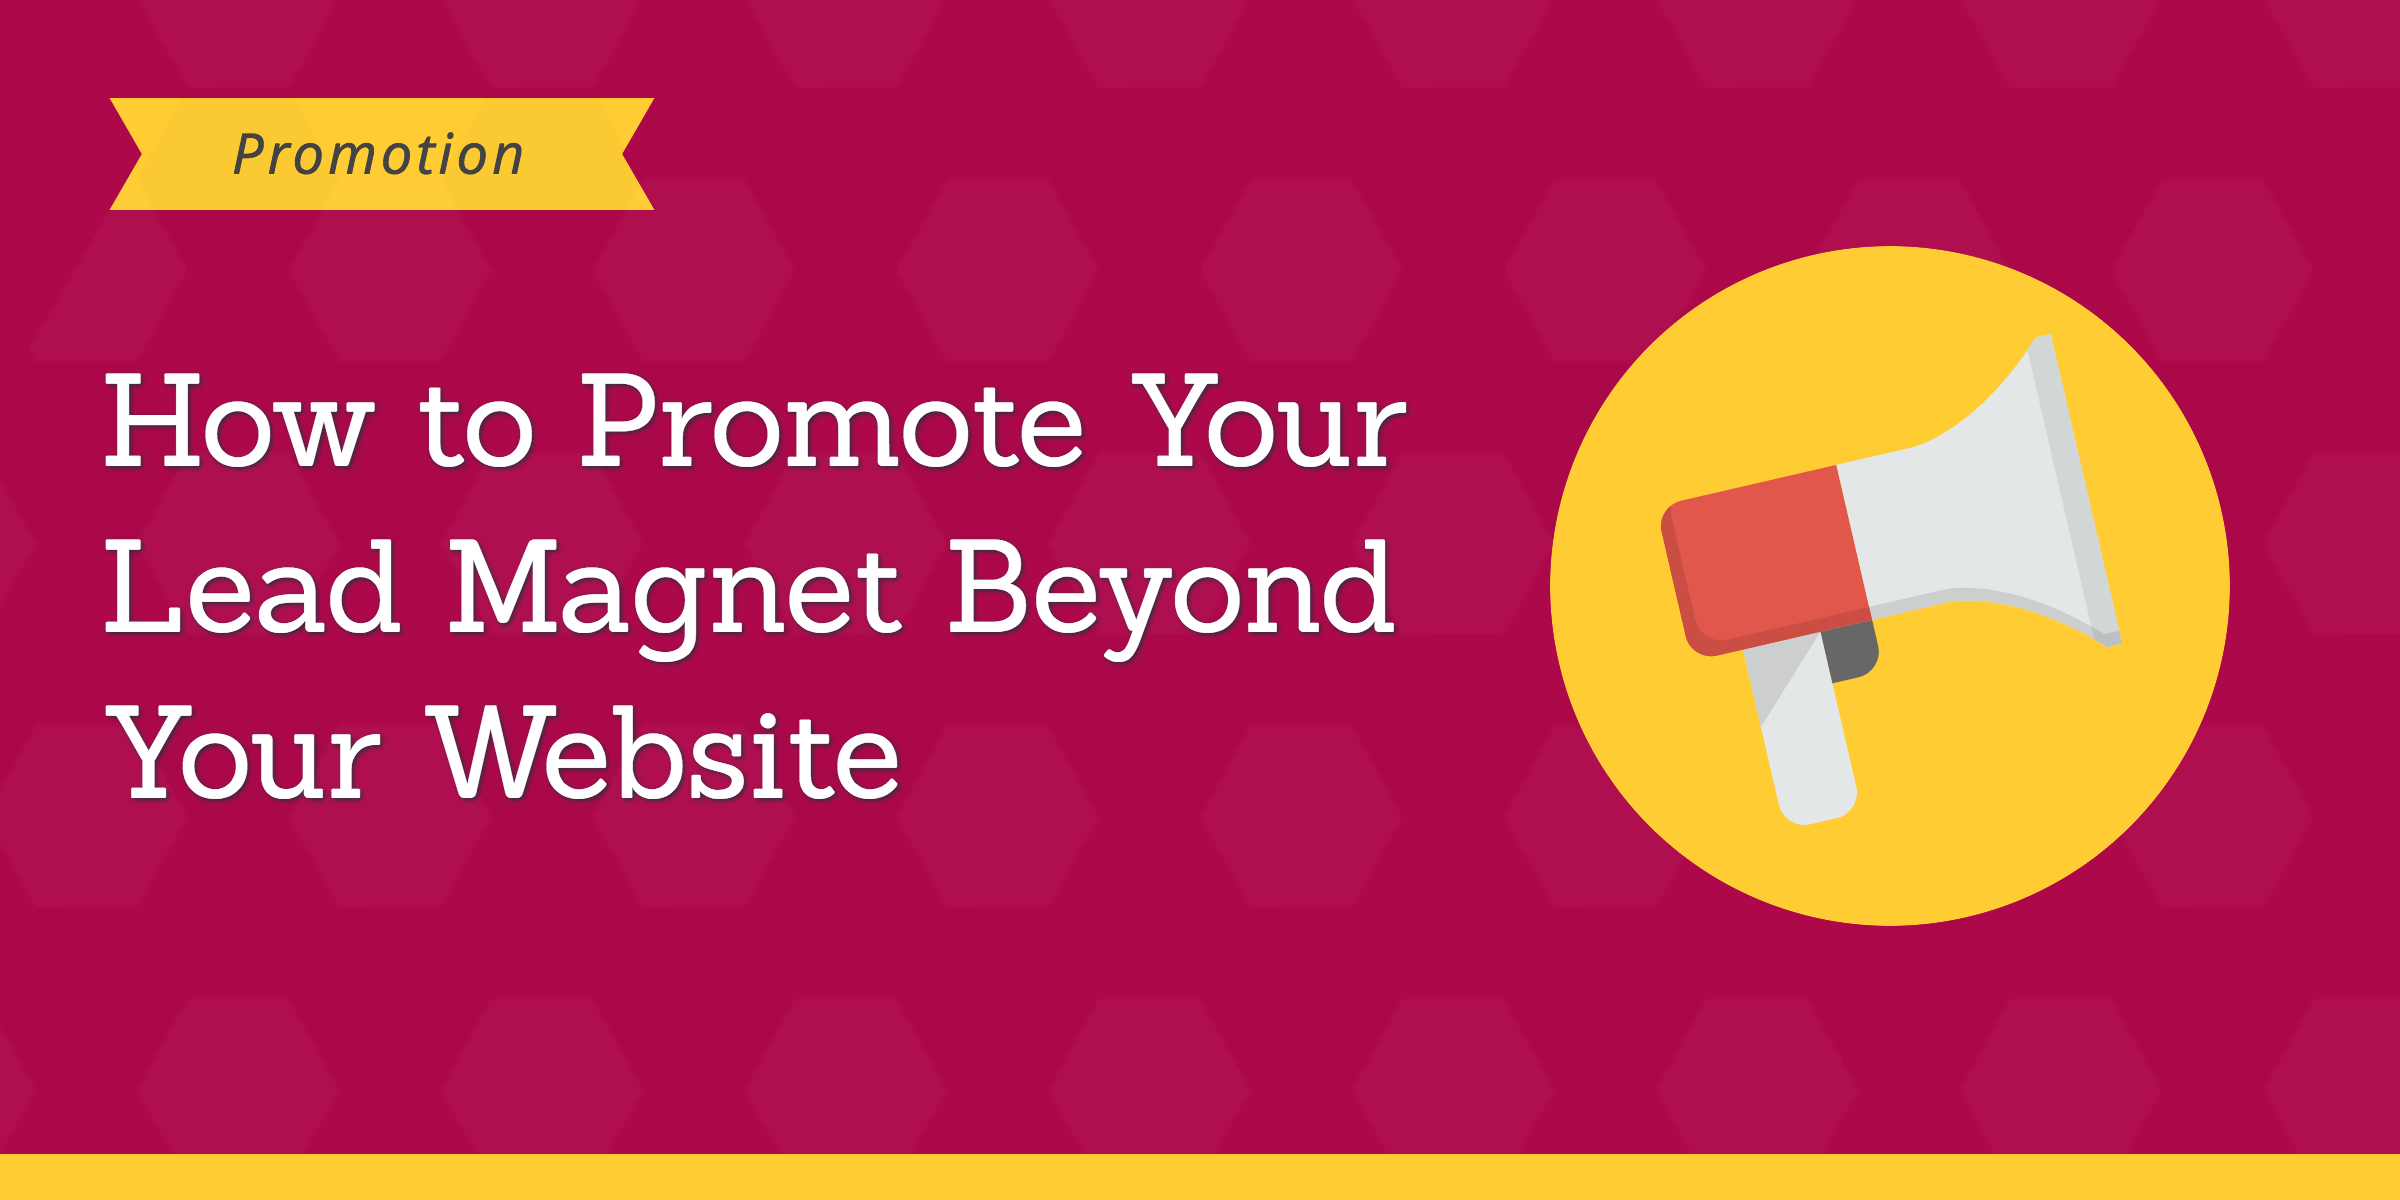 promote lead magnet beyond website